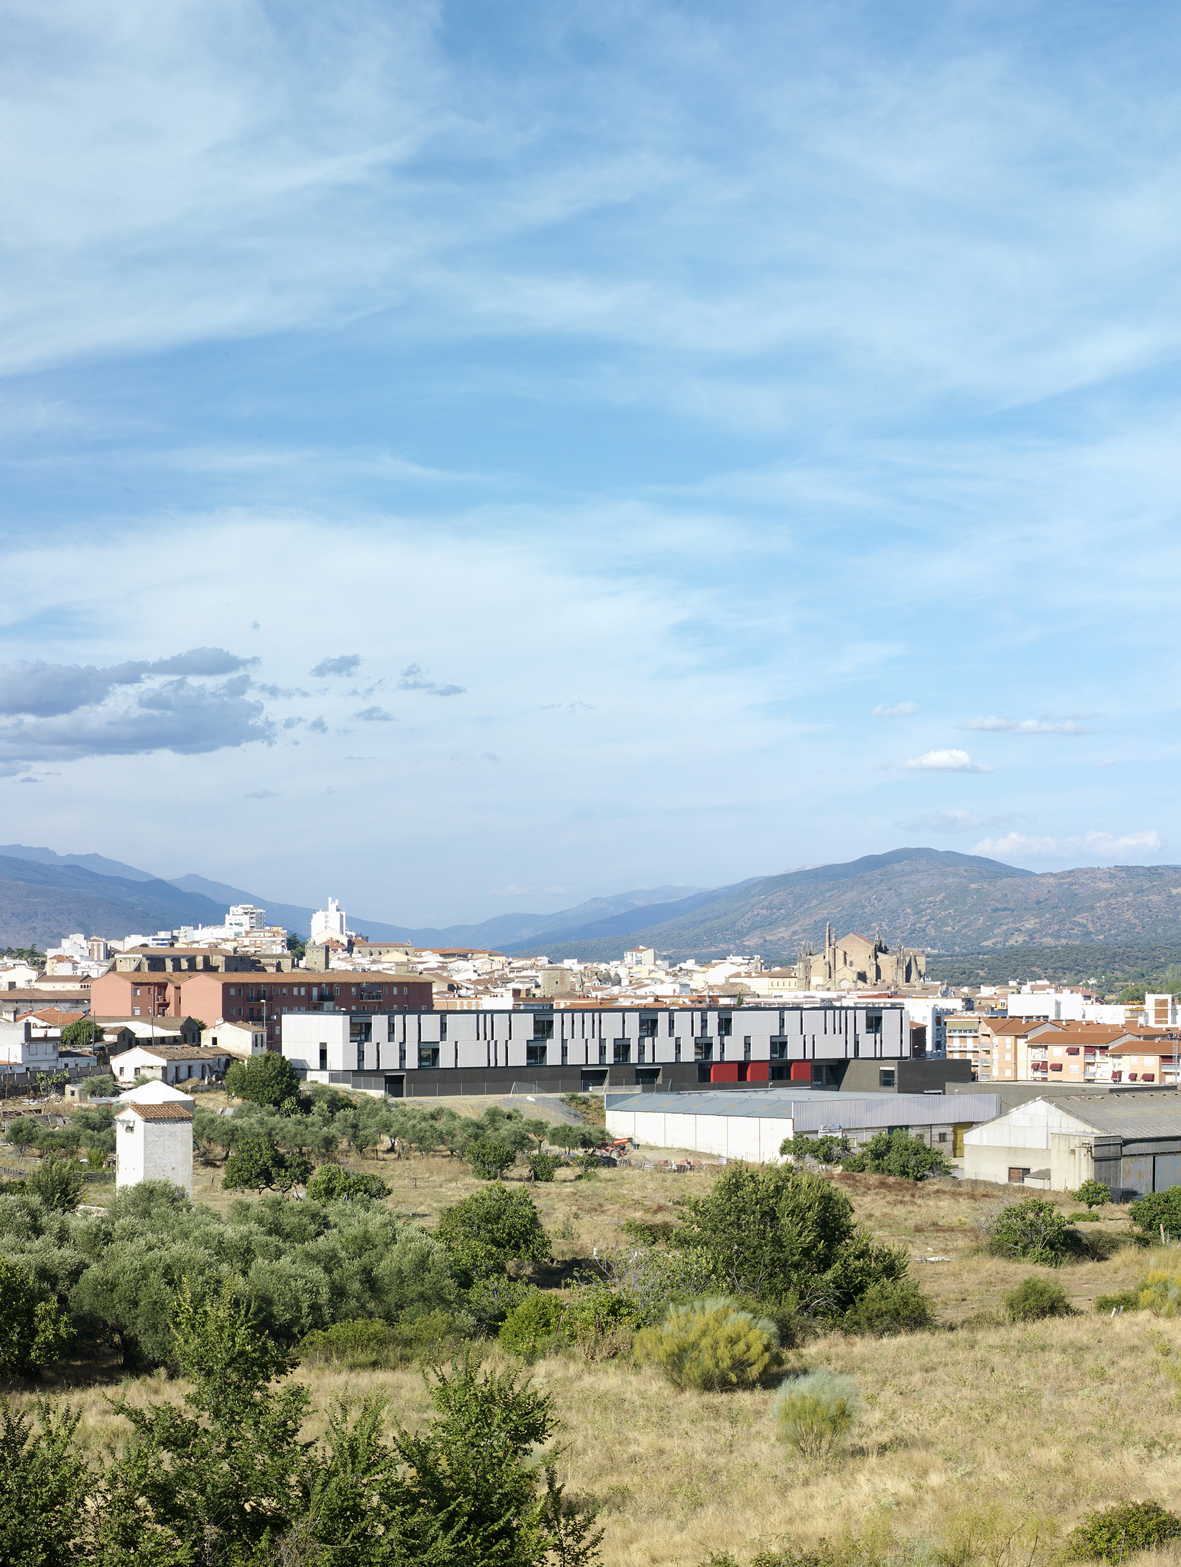 SECONDARY SCHOOL AND COOKING SCHOOL IN PLASENCIA